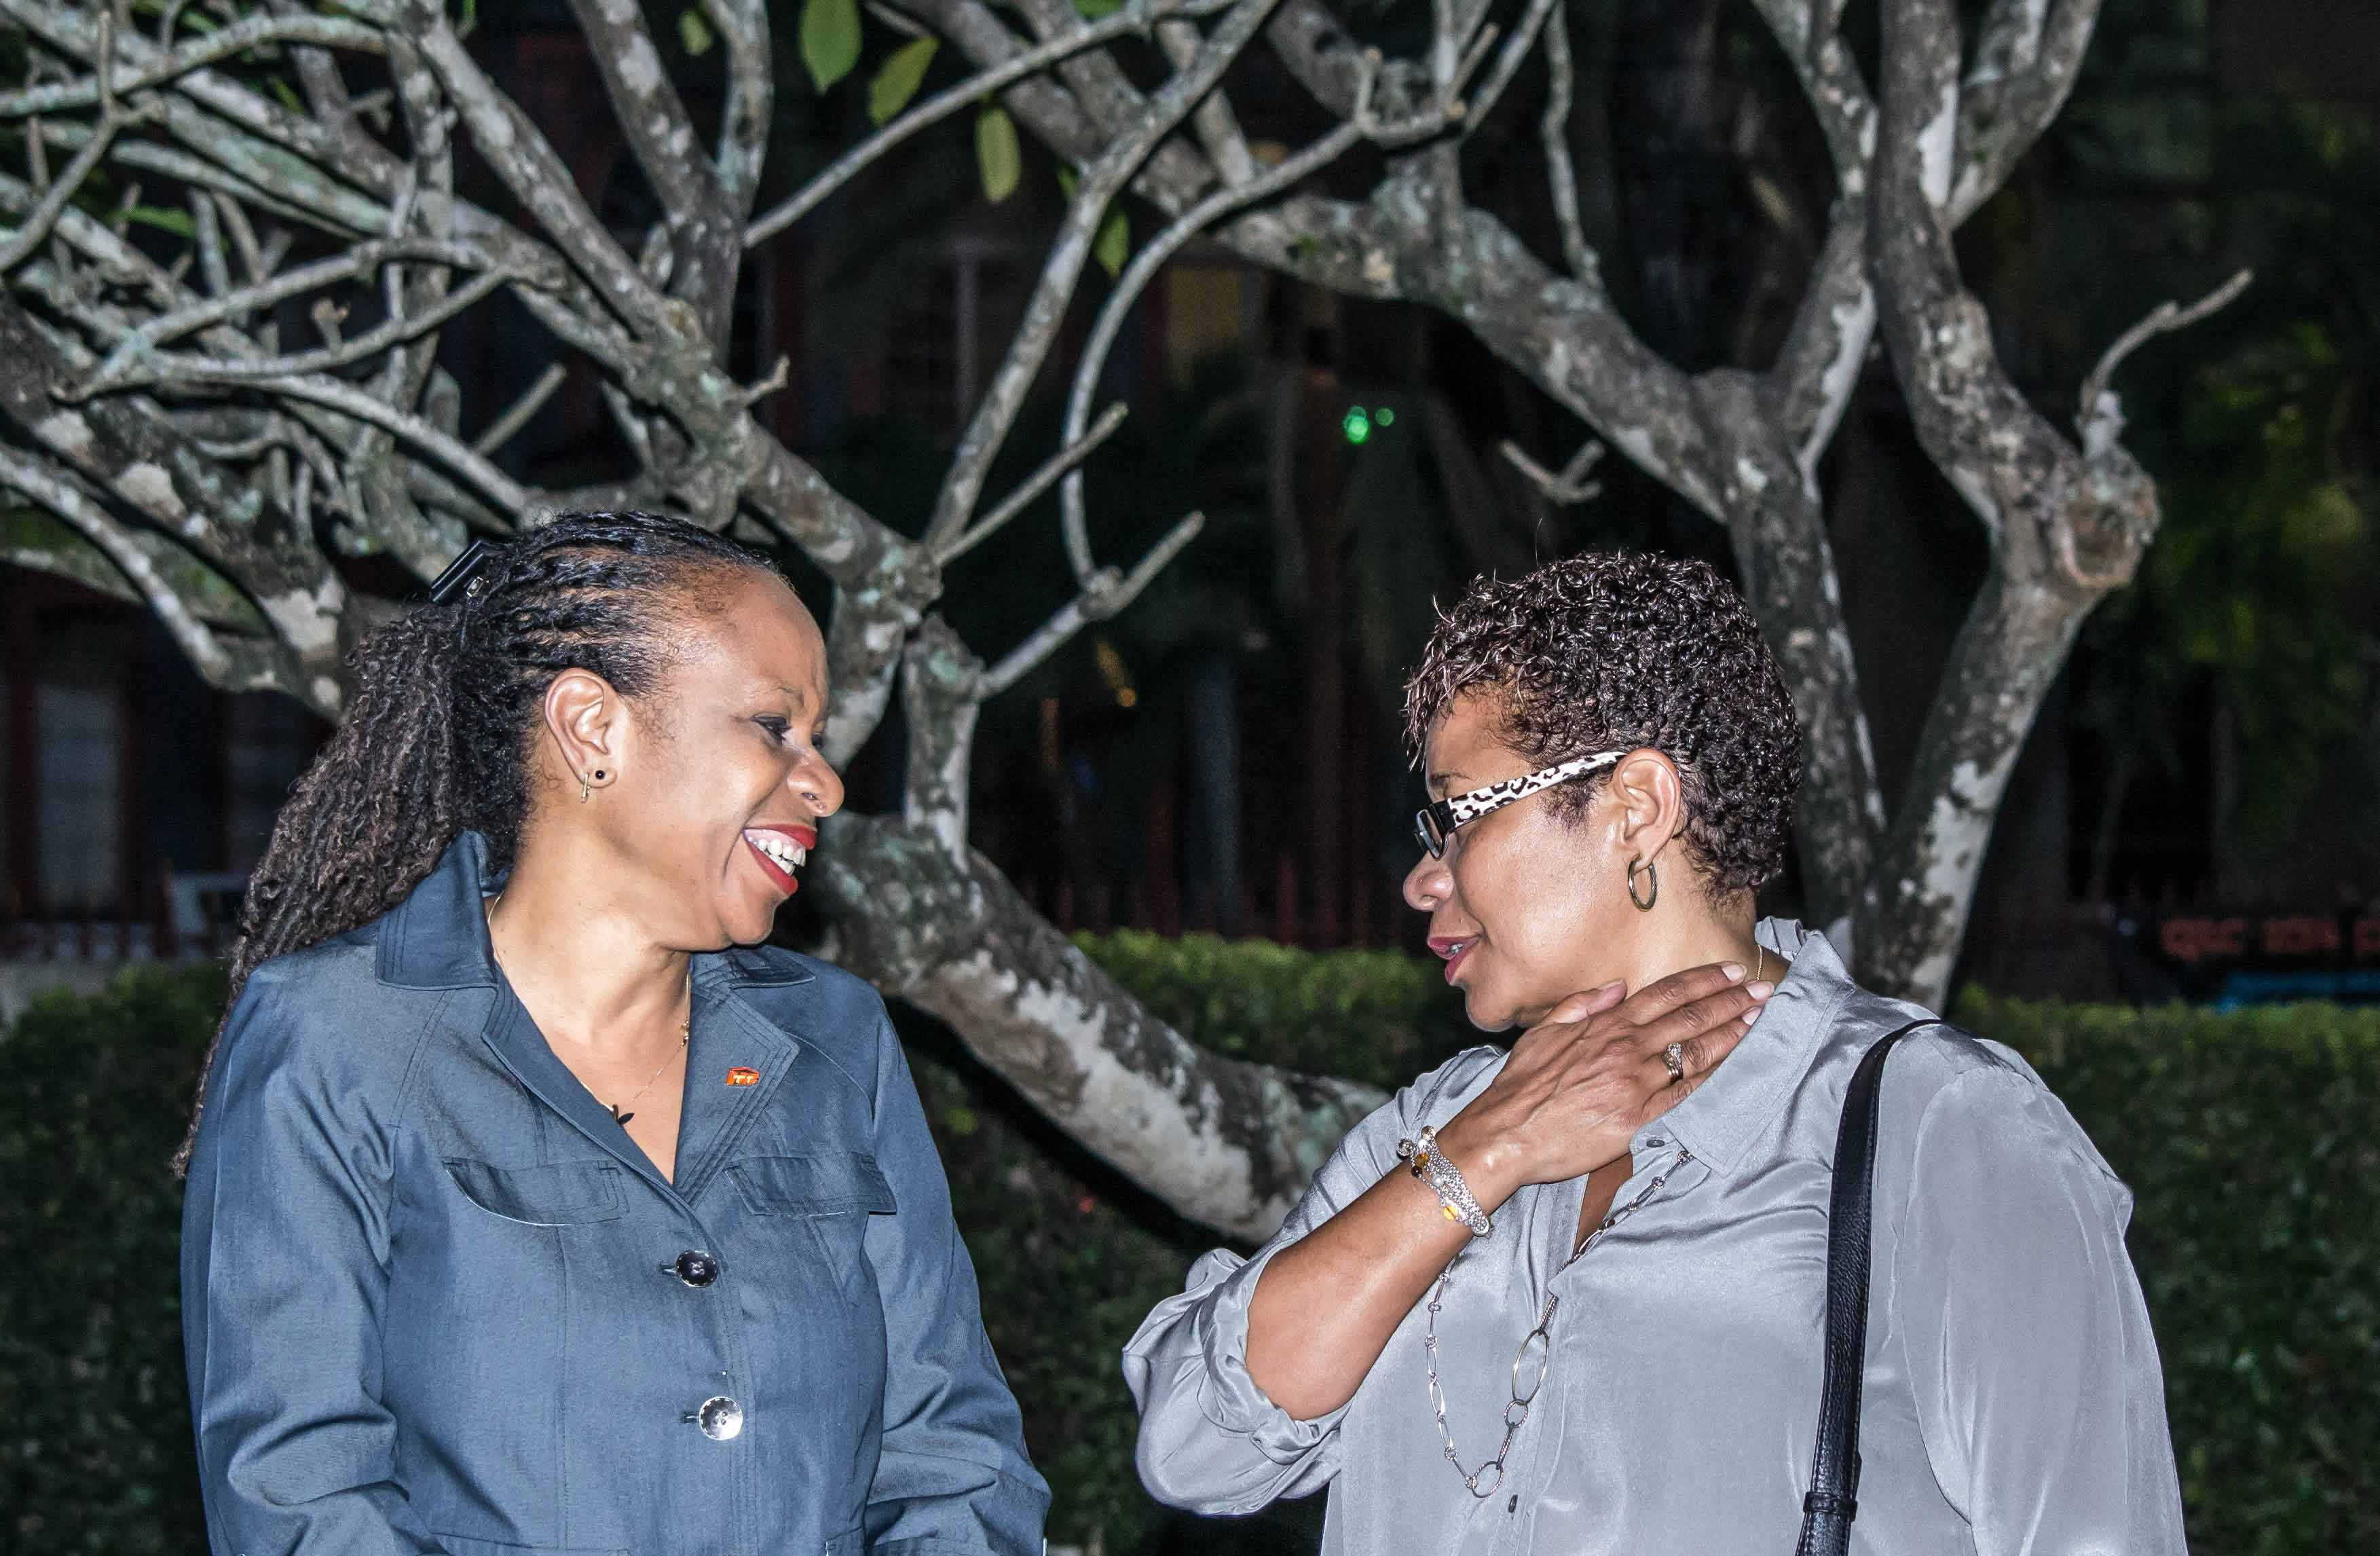 CEO and Managing Director of the Trinidad and Tobago Mortgage Finance Company, Ingrid Lashley (left), and Group General Counsel/Corporate Secretary of the Republic Bank, Jacqueline Quamina (right), share a laugh at the launch.